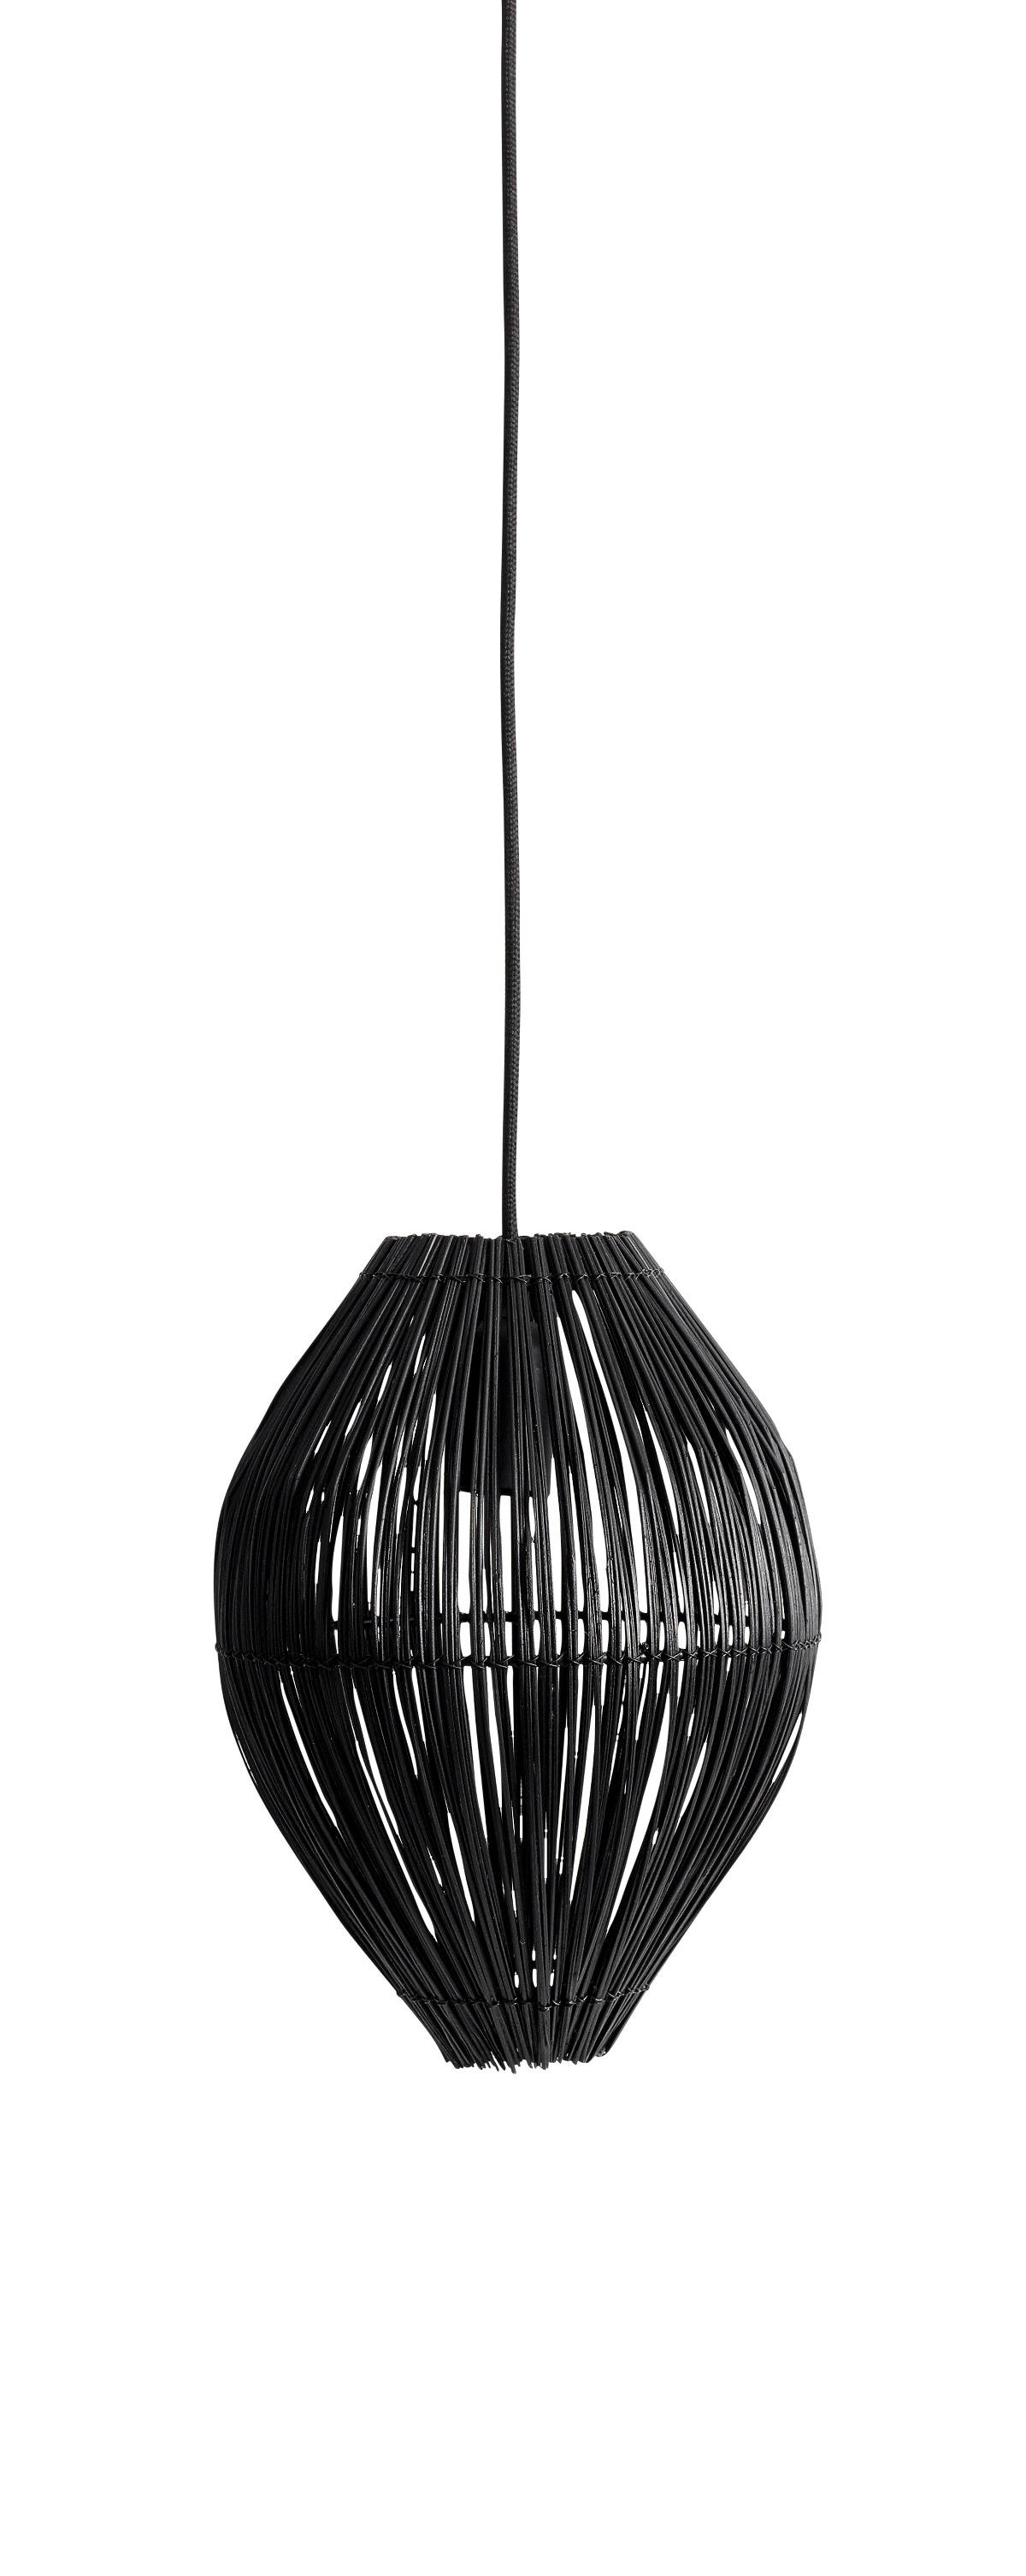 Muubs - Fishtrap Lamp Small - Black (8470000133)